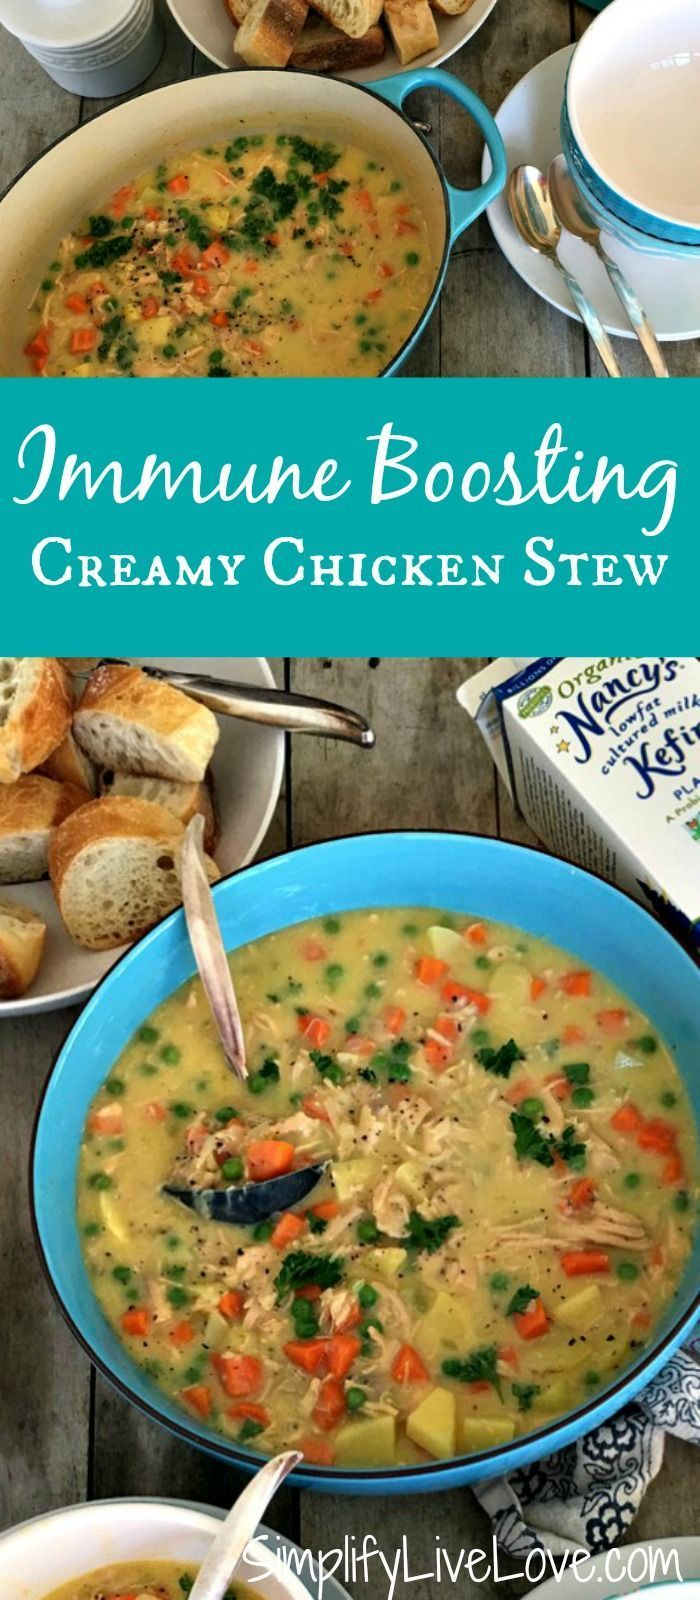 This creamy chicken stew is a family favorite recipe. Featuring organic kefir from /nancysyogurt/ and bone broth, it's also a natural way to boost your immune system! AD